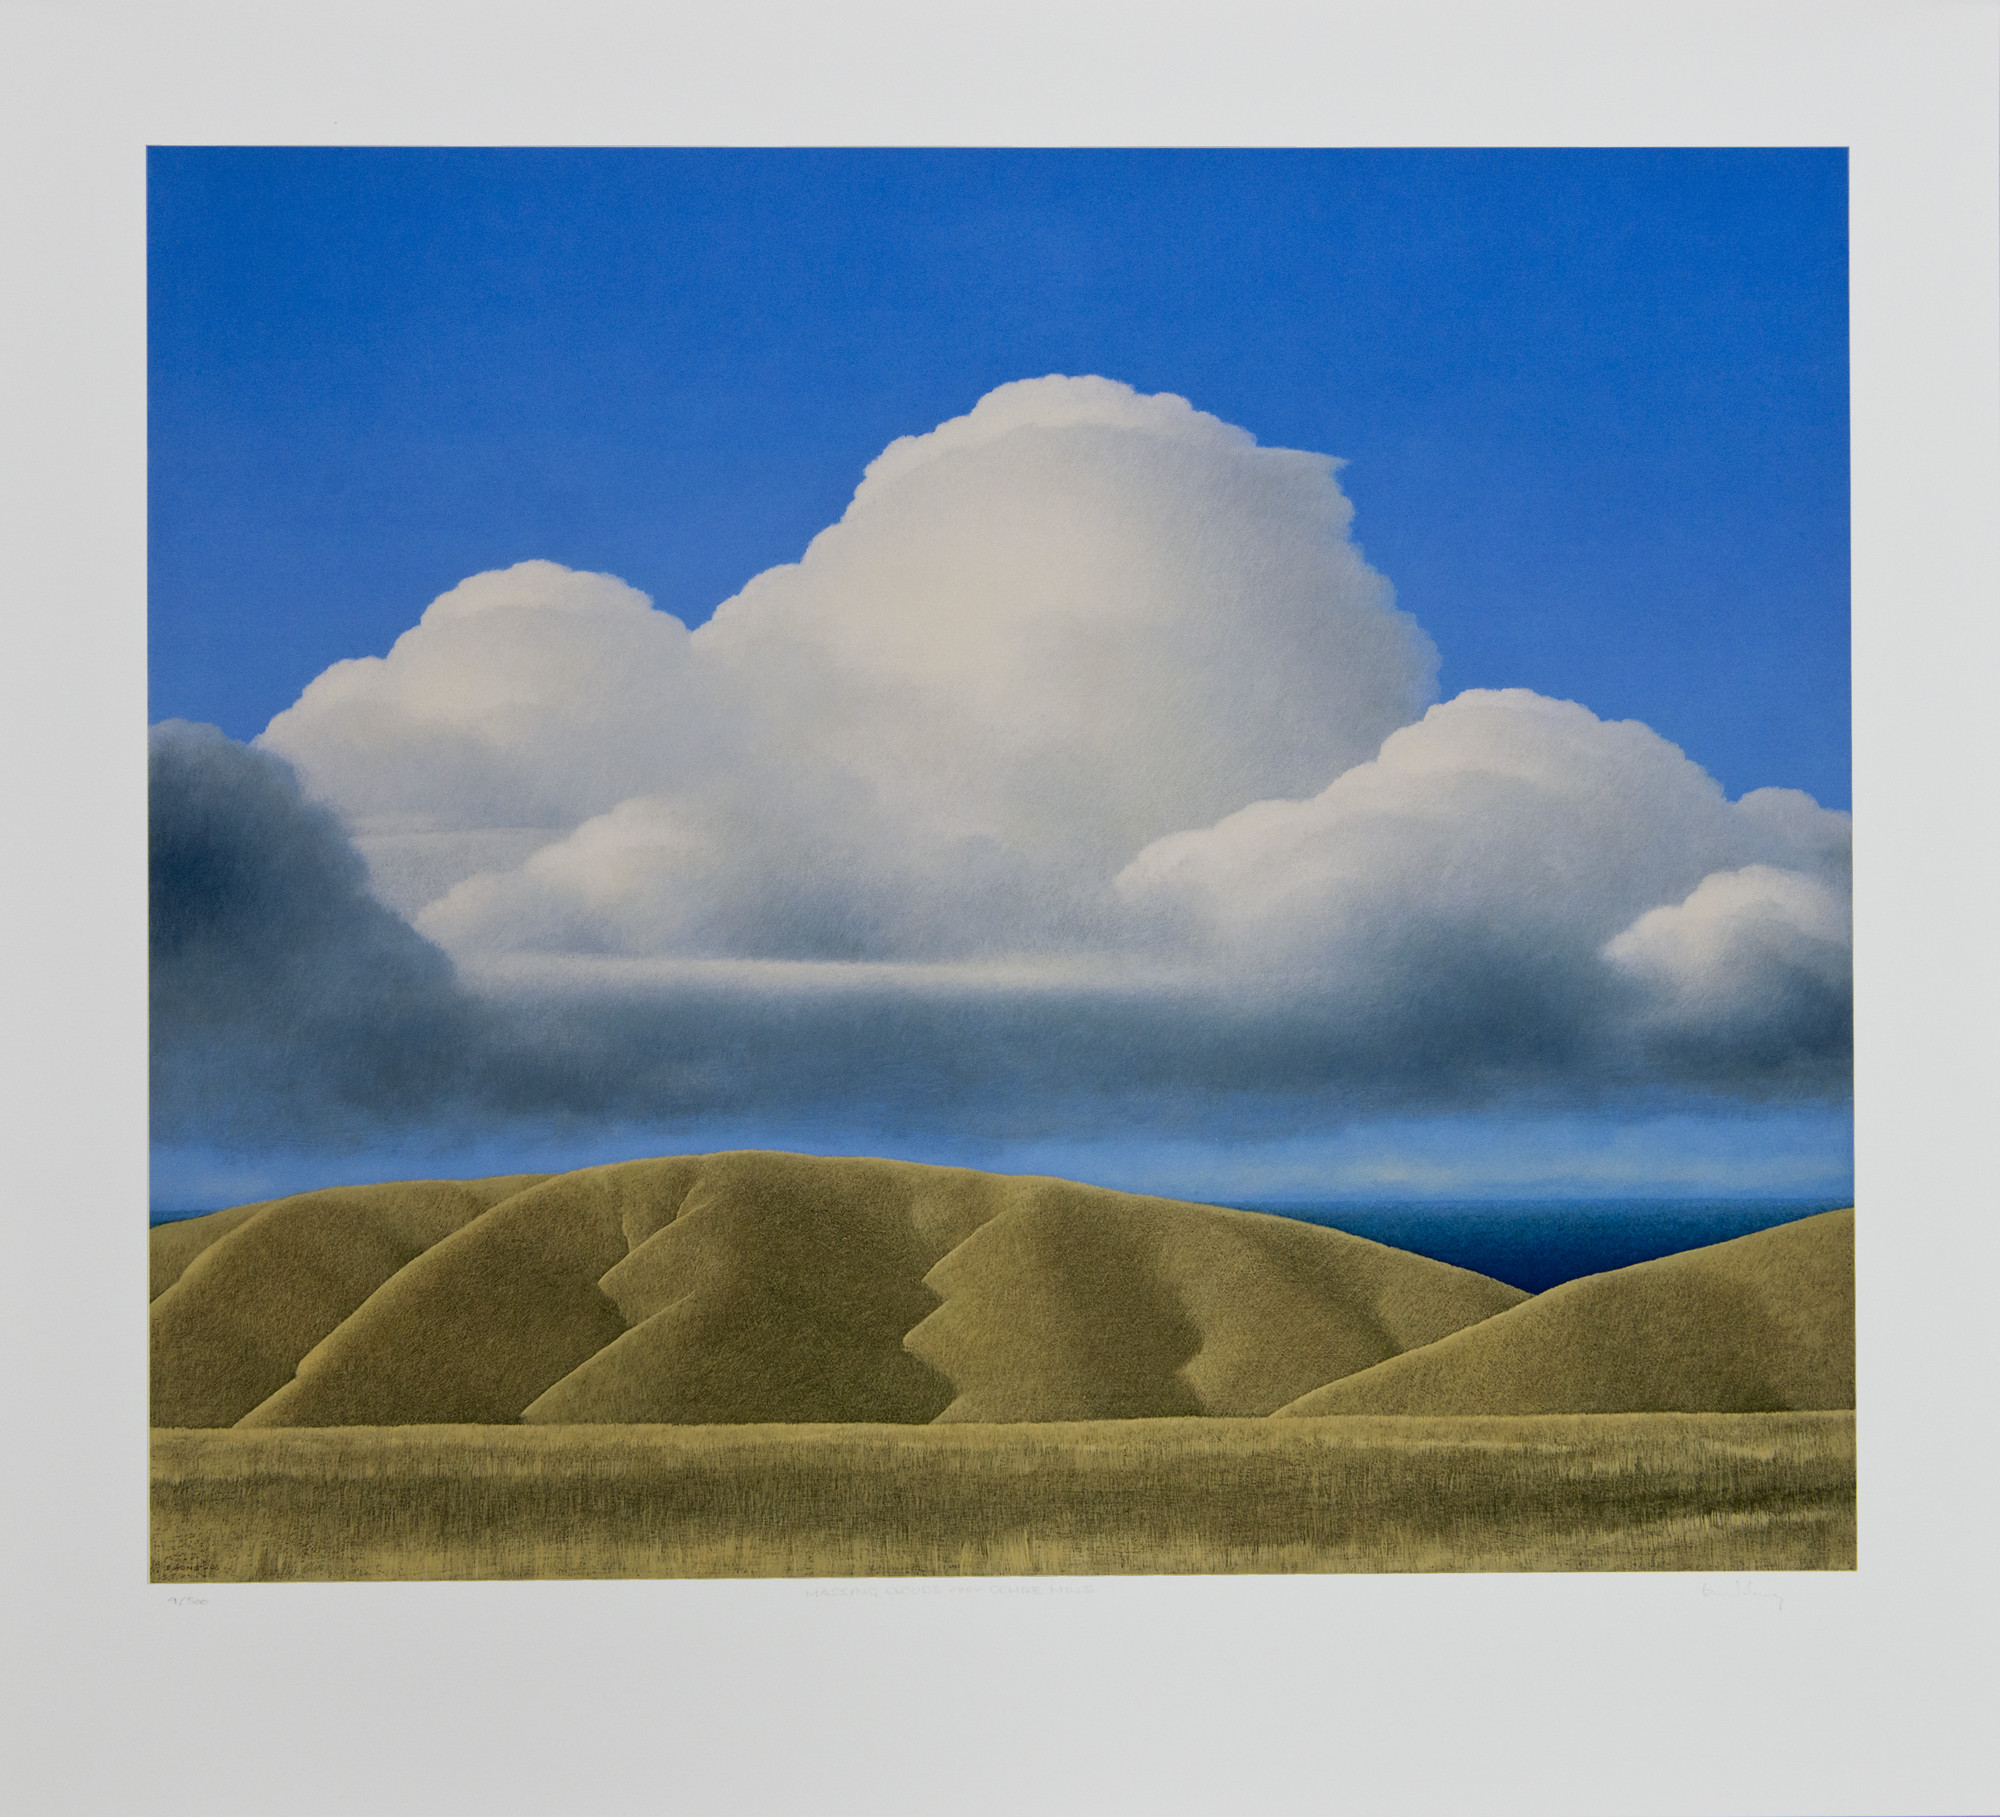 <span class=&#34;link fancybox-details-link&#34;><a href=&#34;/artists/72-brent-wong/works/6818-brent-wong-massing-clouds-over-ochre-hills-n.d./&#34;>View Detail Page</a></span><div class=&#34;artist&#34;><strong>Brent Wong</strong></div> <div class=&#34;title&#34;><em>Massing Clouds Over Ochre Hills</em>, n.d.</div> <div class=&#34;medium&#34;>Giclee print</div> <div class=&#34;dimensions&#34;>26.8 x 21.5 in<br />68 x 54.5 cm</div> <div class=&#34;edition_details&#34;>#4/500</div>